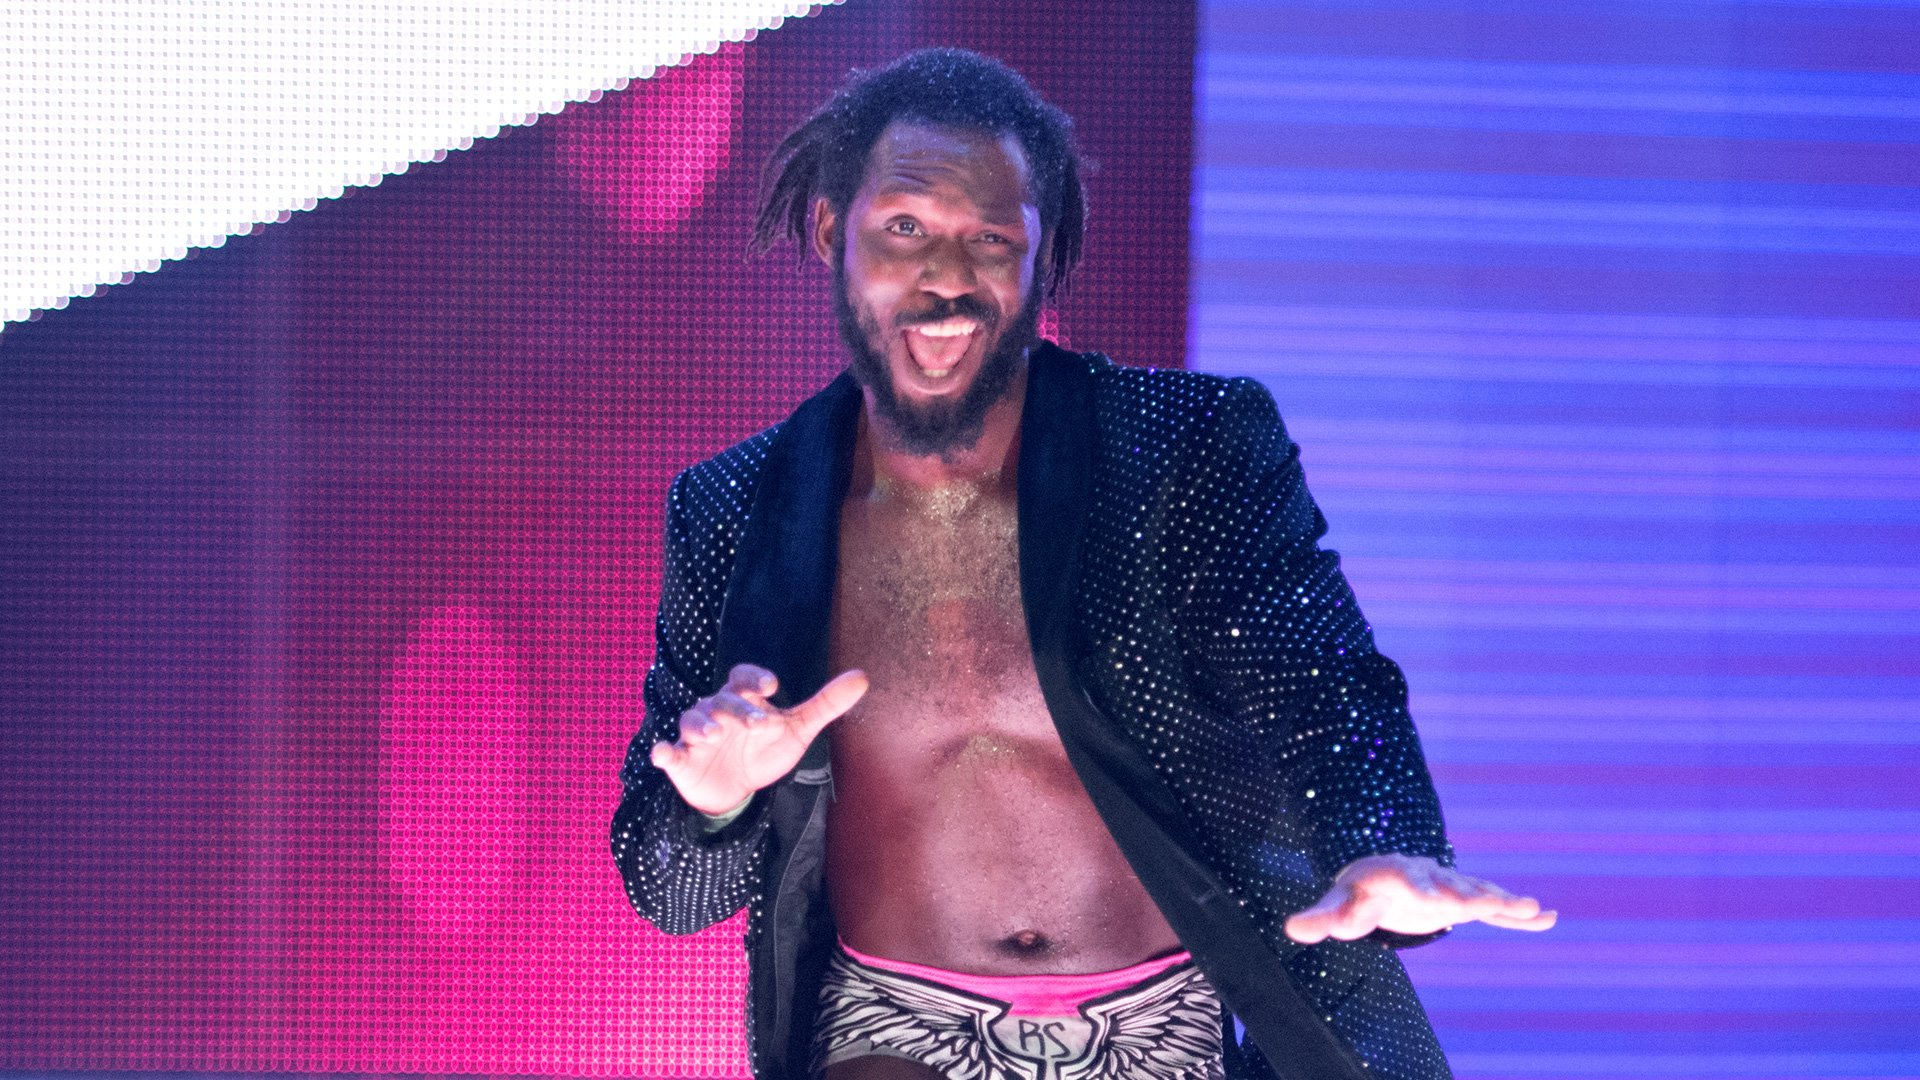 Rich Swann talks Bound For Glory, his WWE release and breaking the mold - sporting news